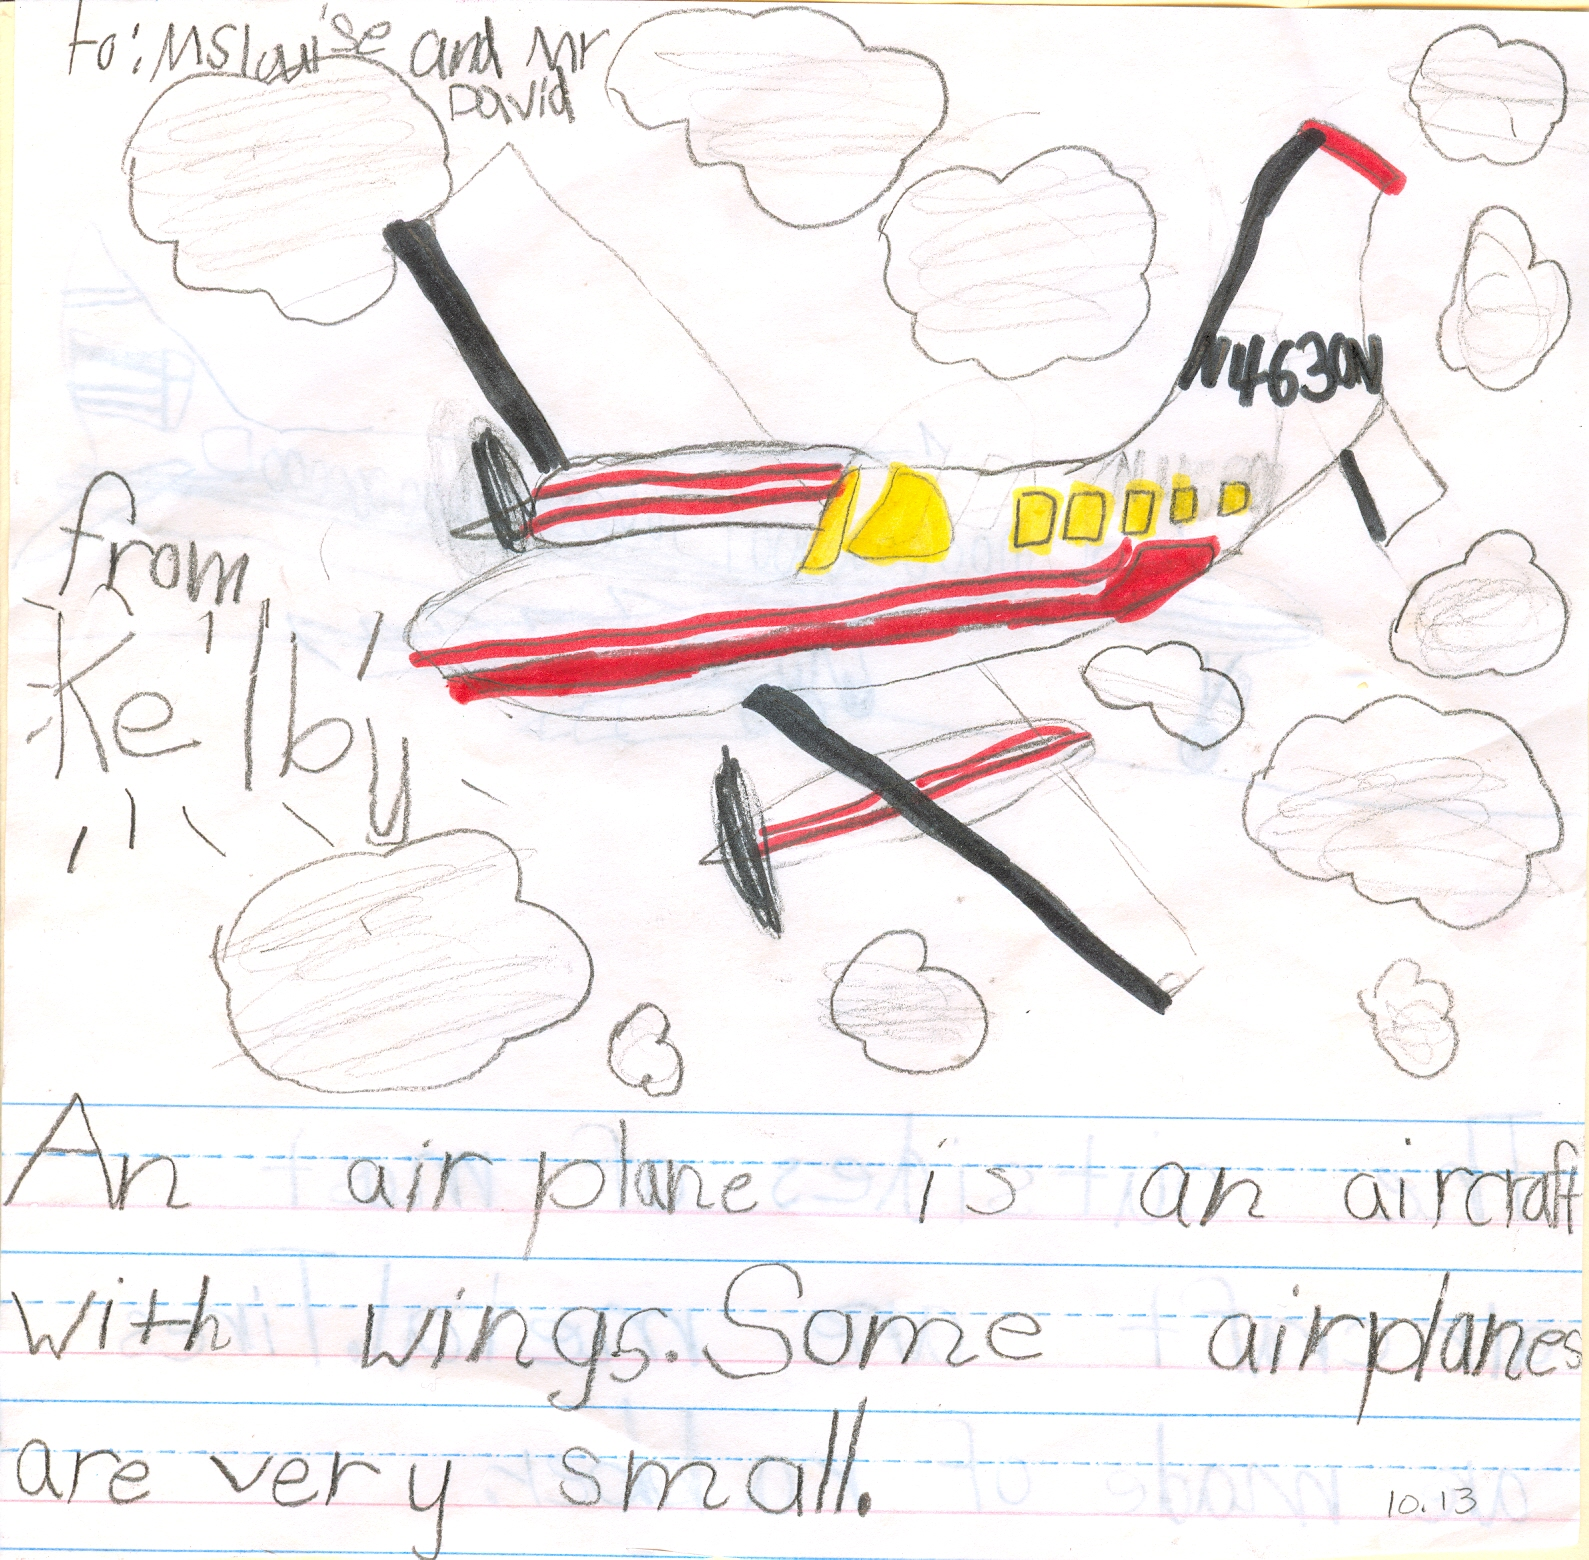 Kelby's Airplanes, 11/15/2013